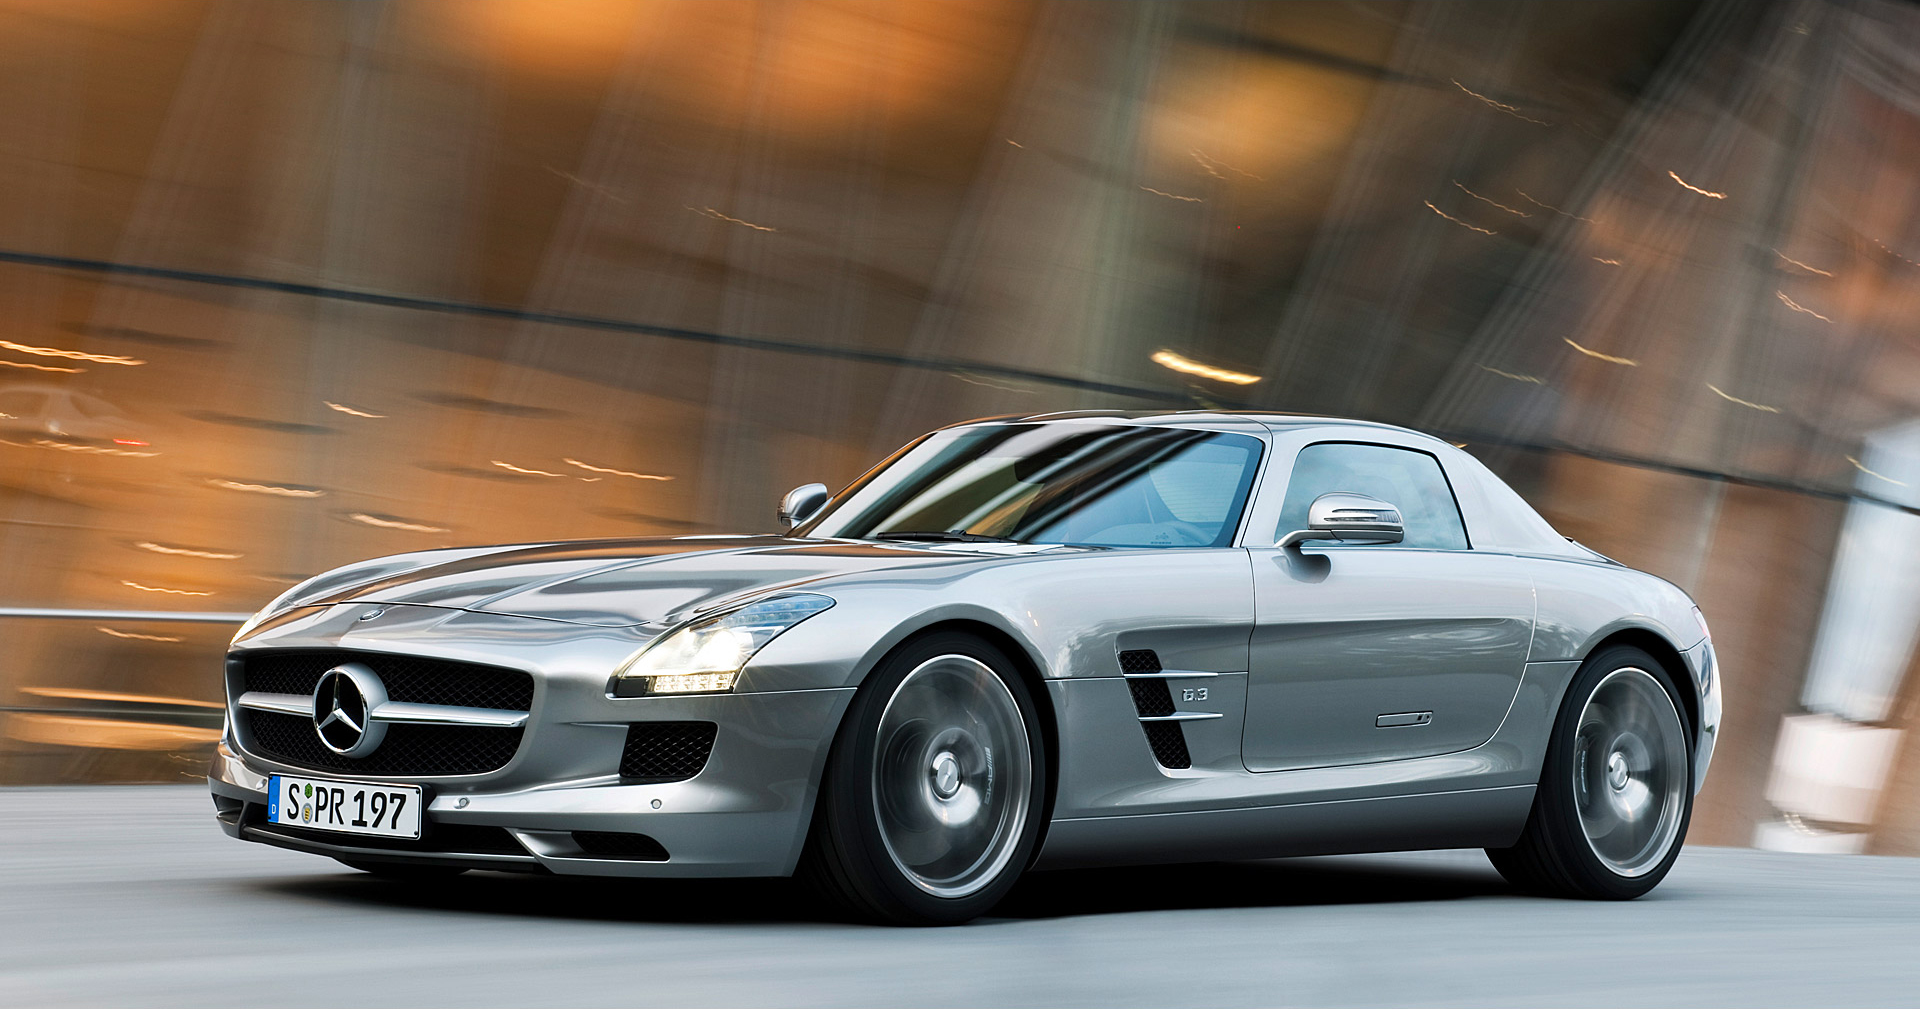 new mercedes benz sls amg price mercedes benz sls amg specs. Black Bedroom Furniture Sets. Home Design Ideas